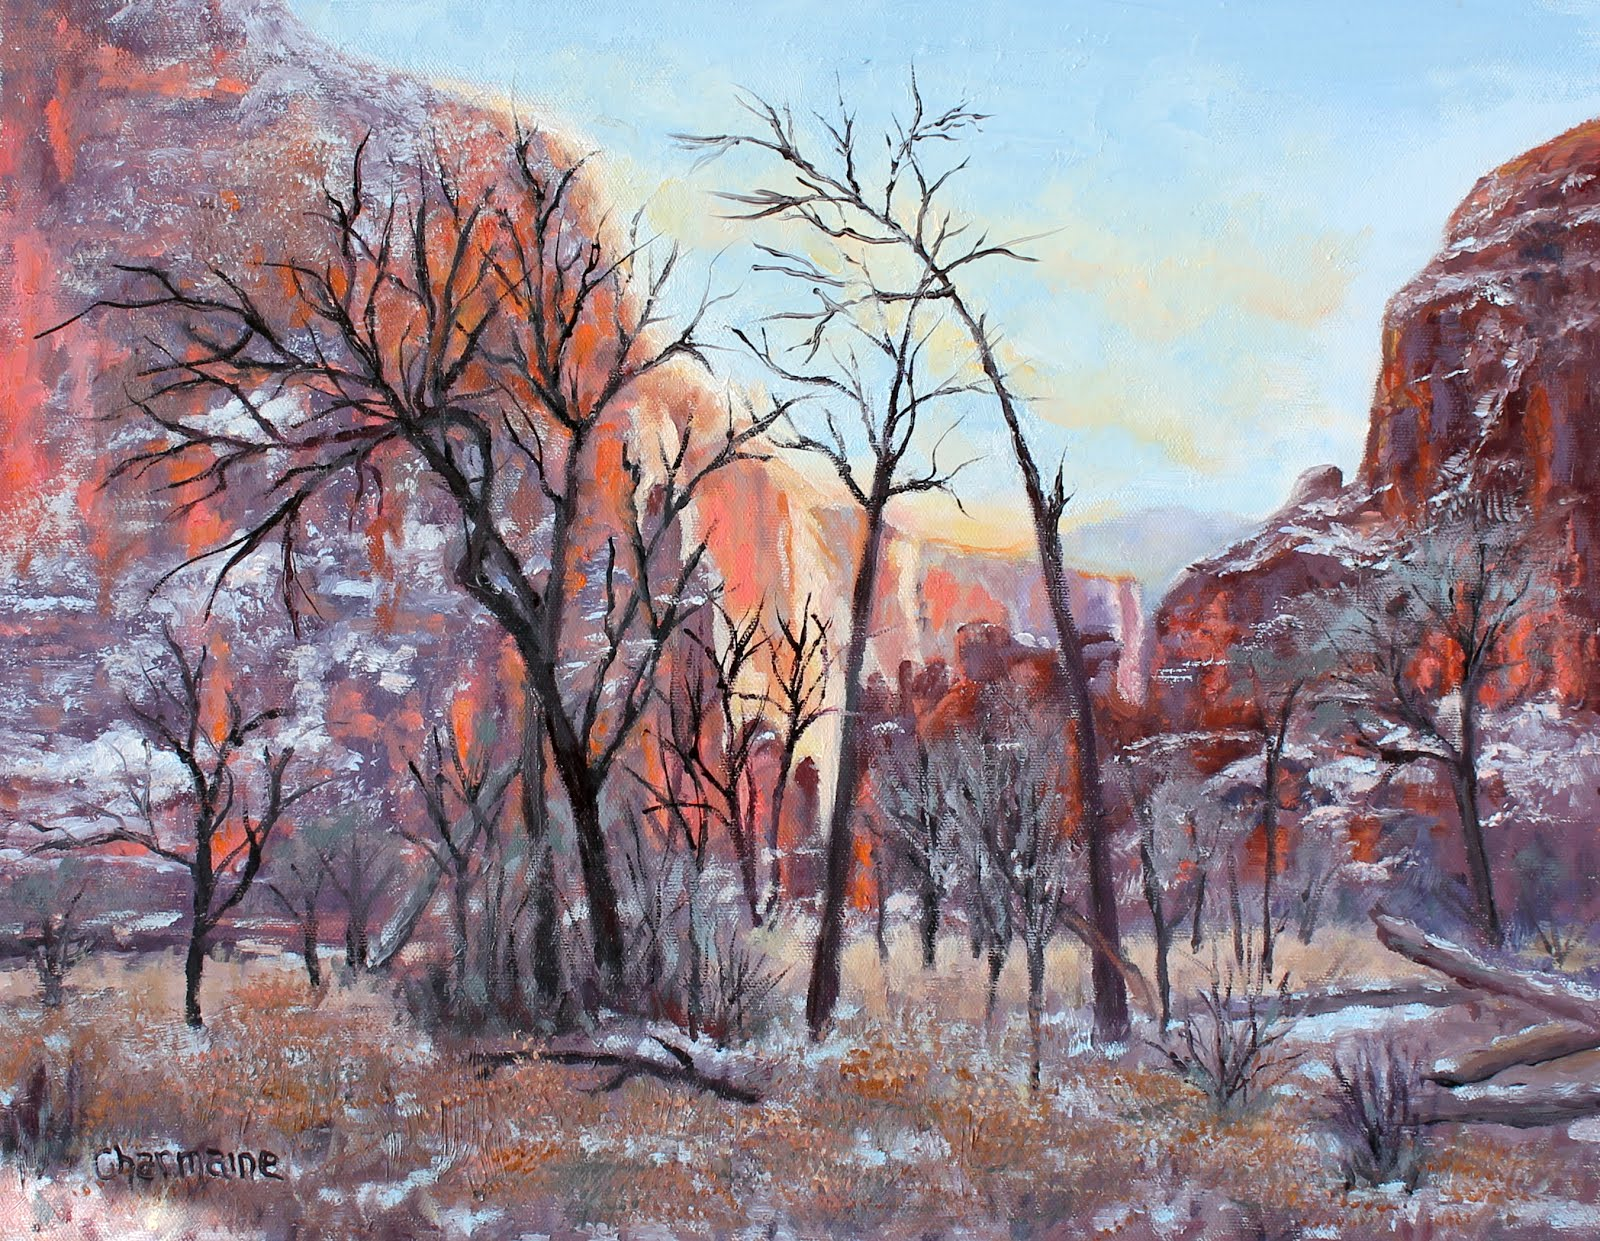 New Year's Afternoon in Zion